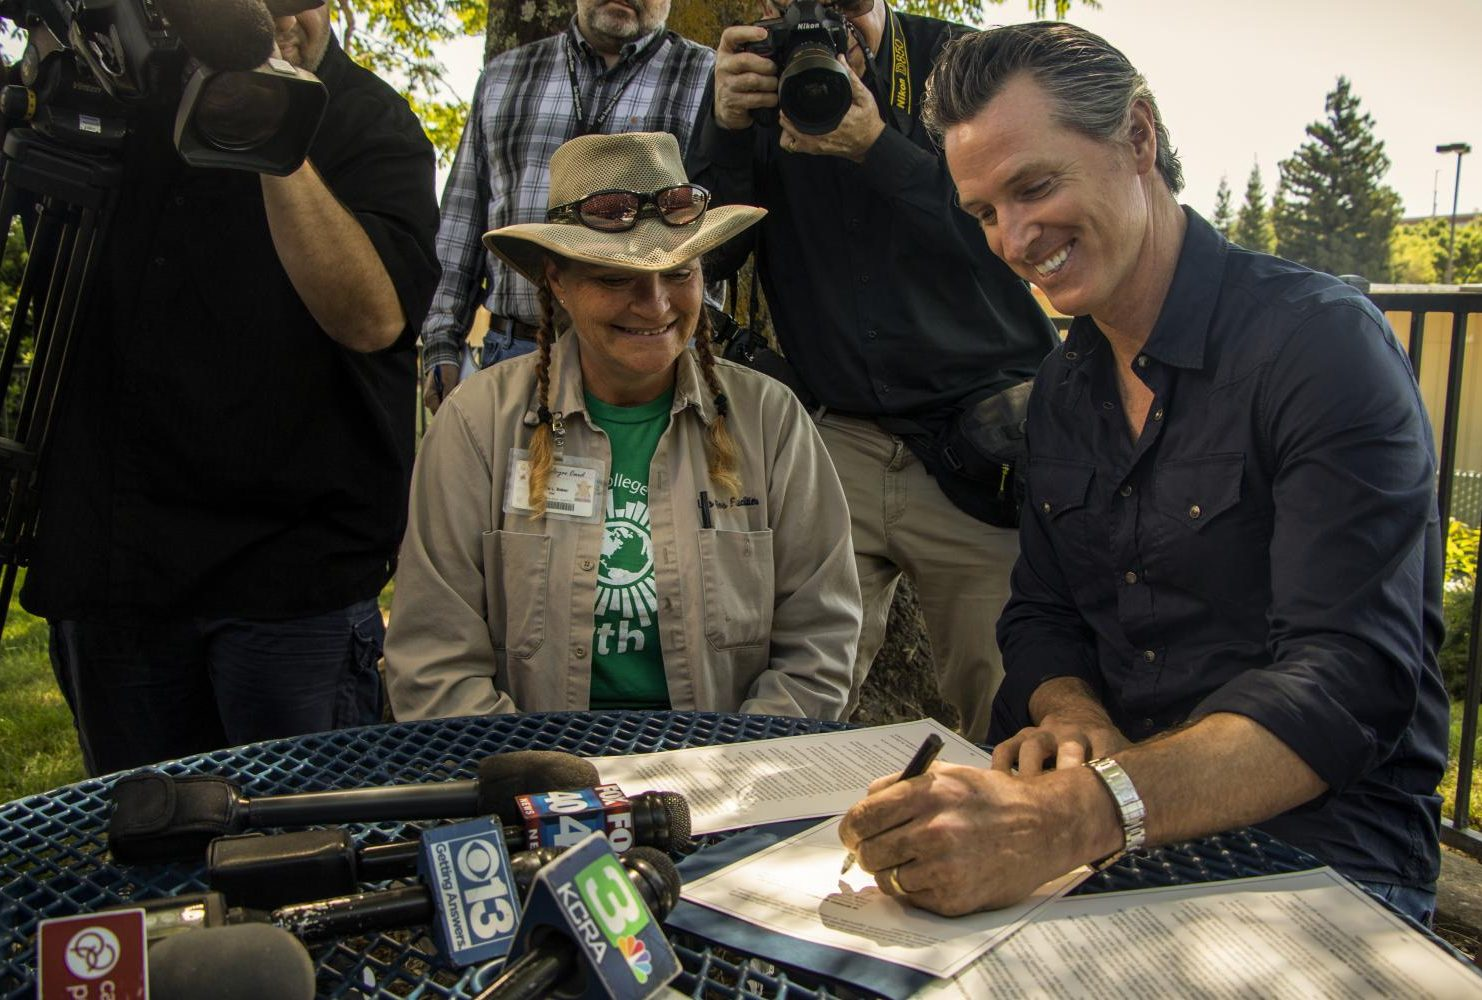 Governor Gavin Newsom signs a executive order about the advancements of automation in the work force during International Workers' Day at American River College on May 1, 2019. (Photo by Ashley Hayes-Stone)